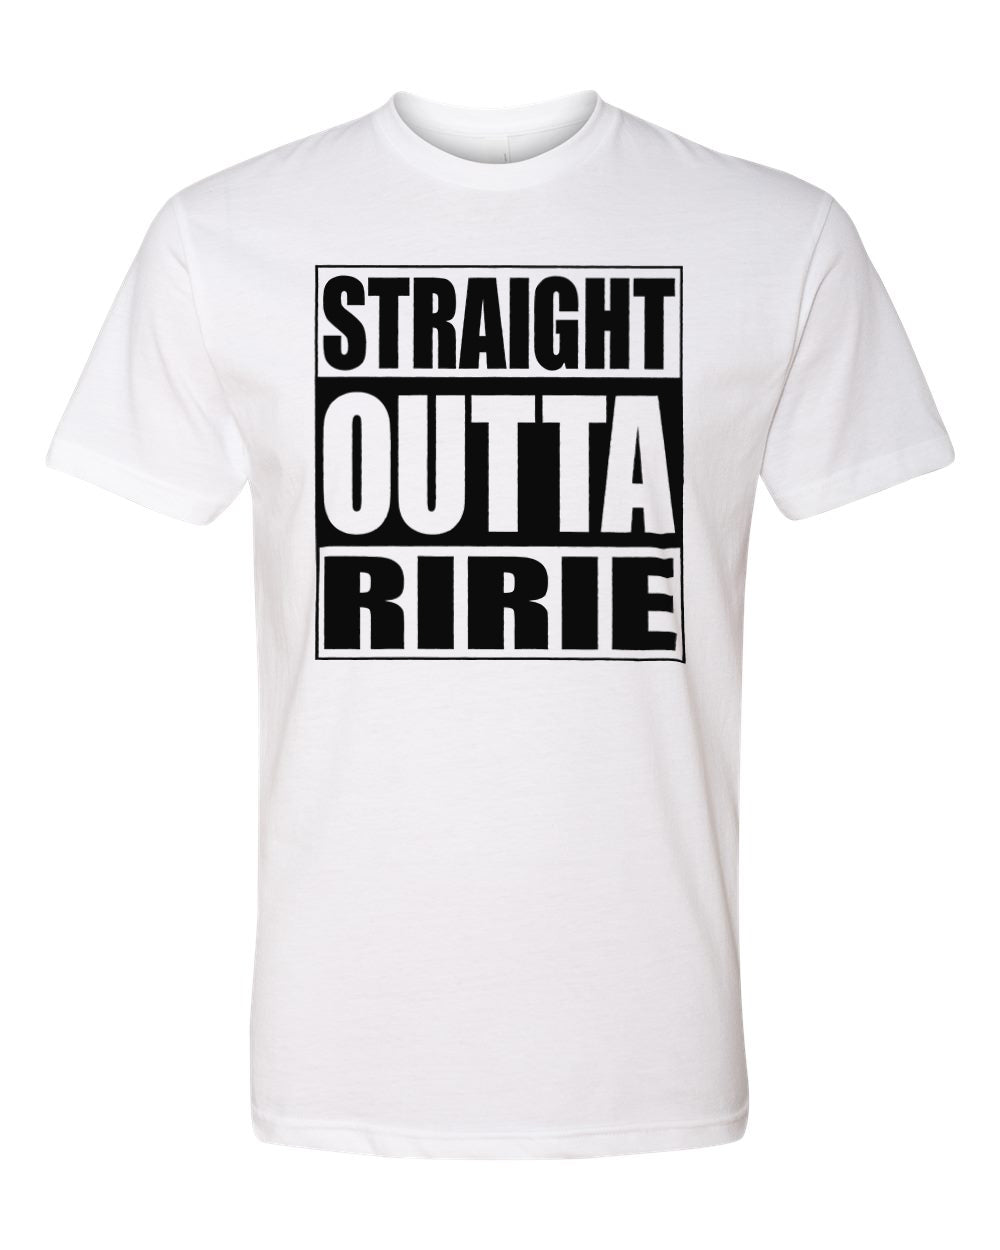 RIRIE HS – Next Level Fitted Crew Tee – Straight Outta Ririe (Black/White)